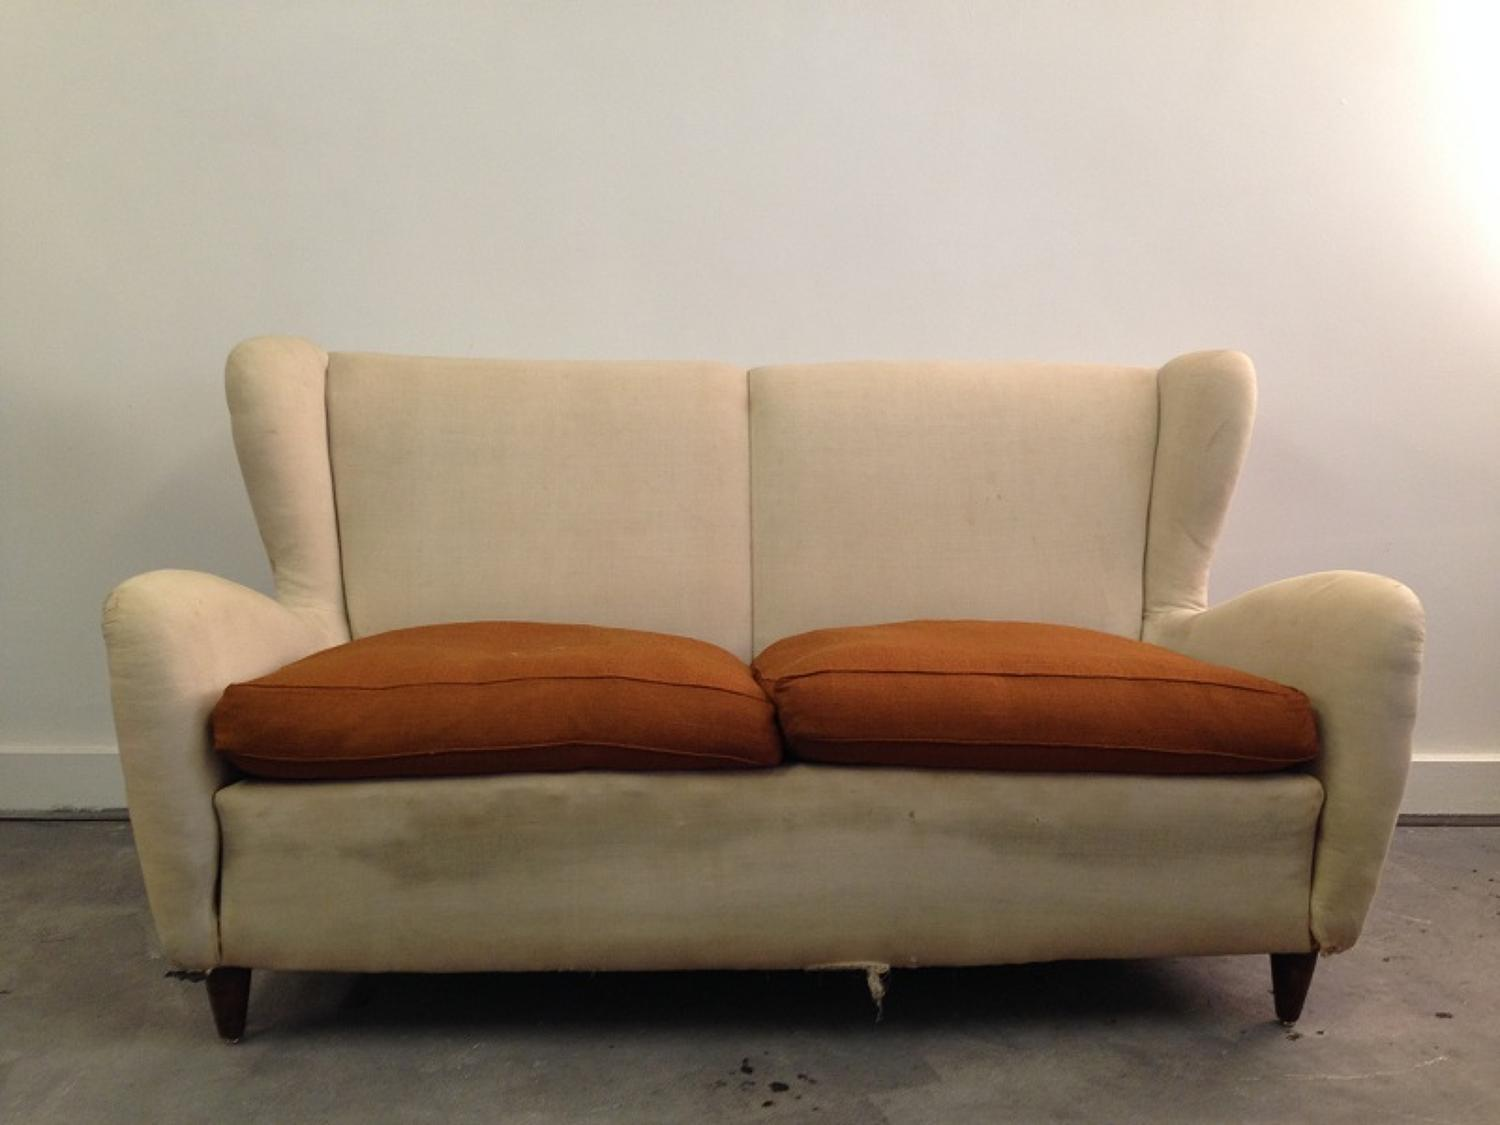 1950s Italian winged sofa